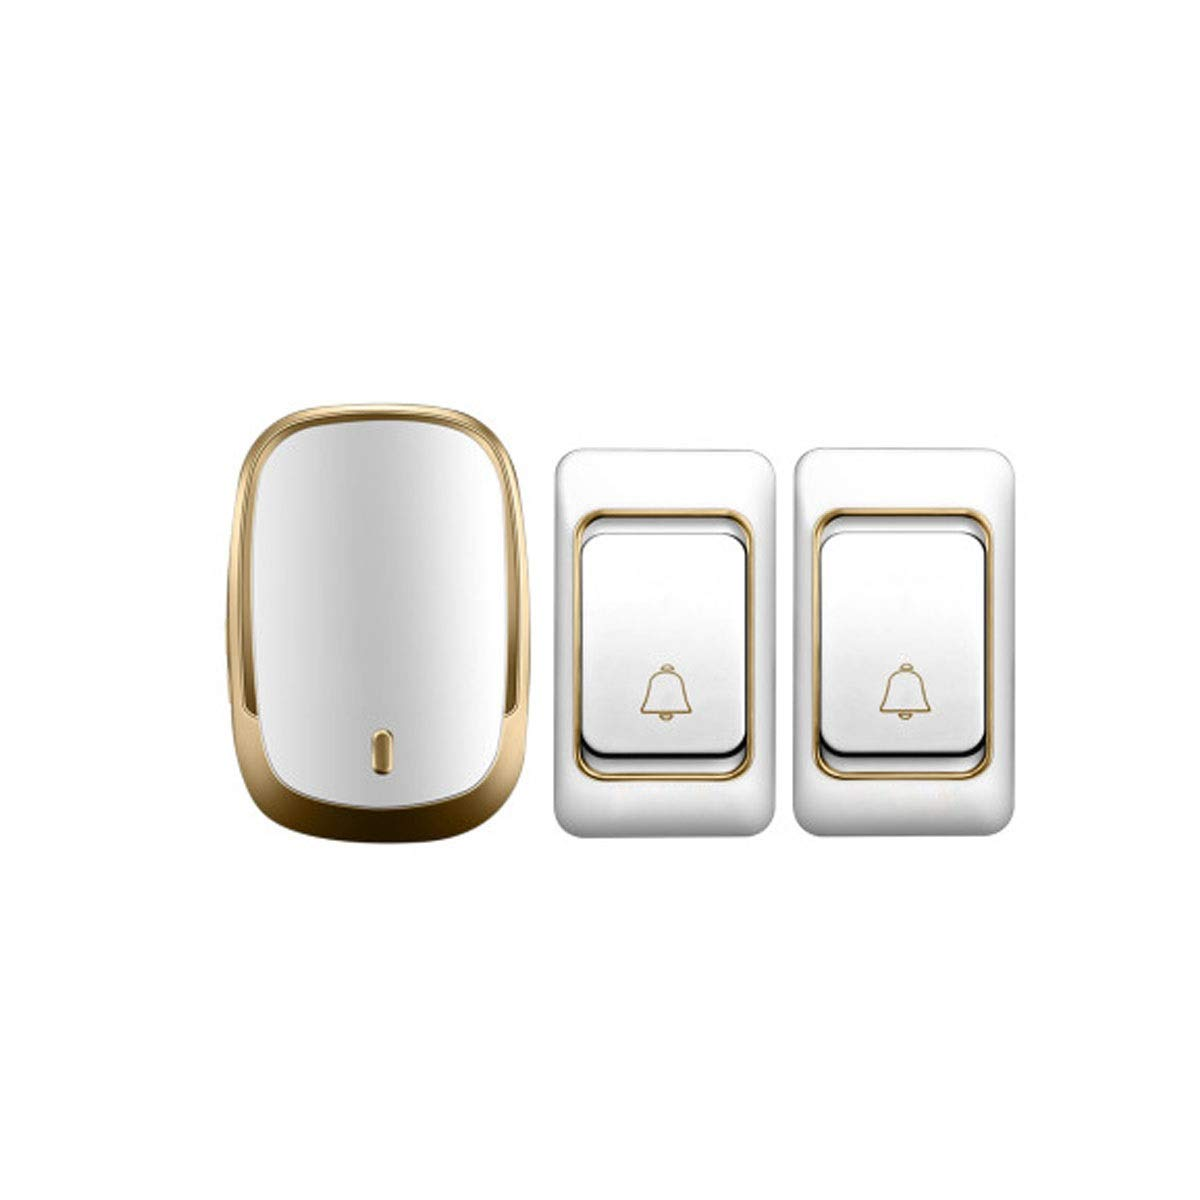 gold(two drag one) Doorbell, Wireless Home Two-to-one Ultra-Long-Range Wireless Doorbell, Atmospheric Design (gold, Silver) (color   gold(Two Drag one))